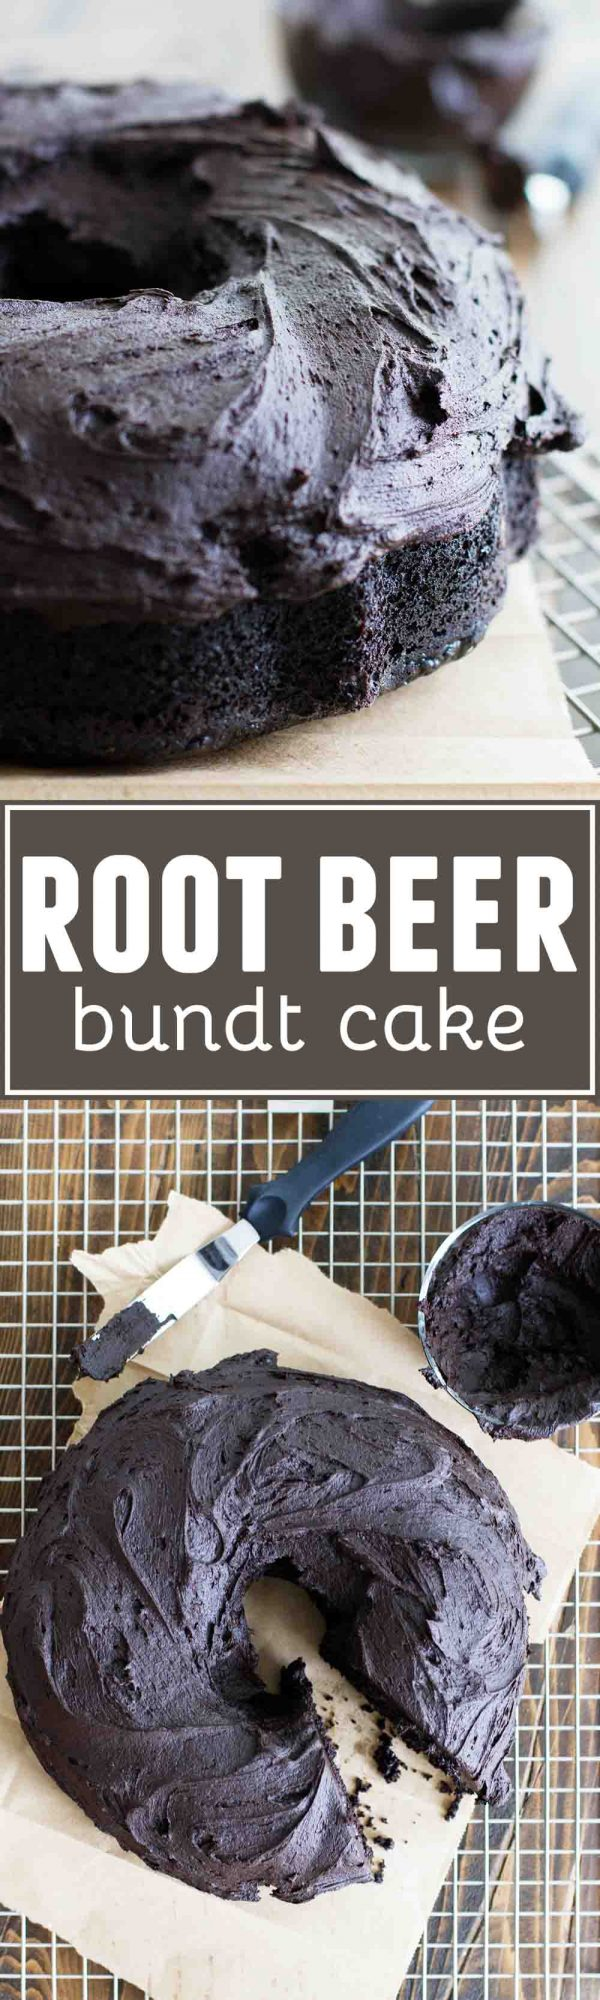 Deep, dark chocolate with a hint of root beer, this Root Beer Bundt Cake is super moist and irresistible. This cake gets even better the second day!